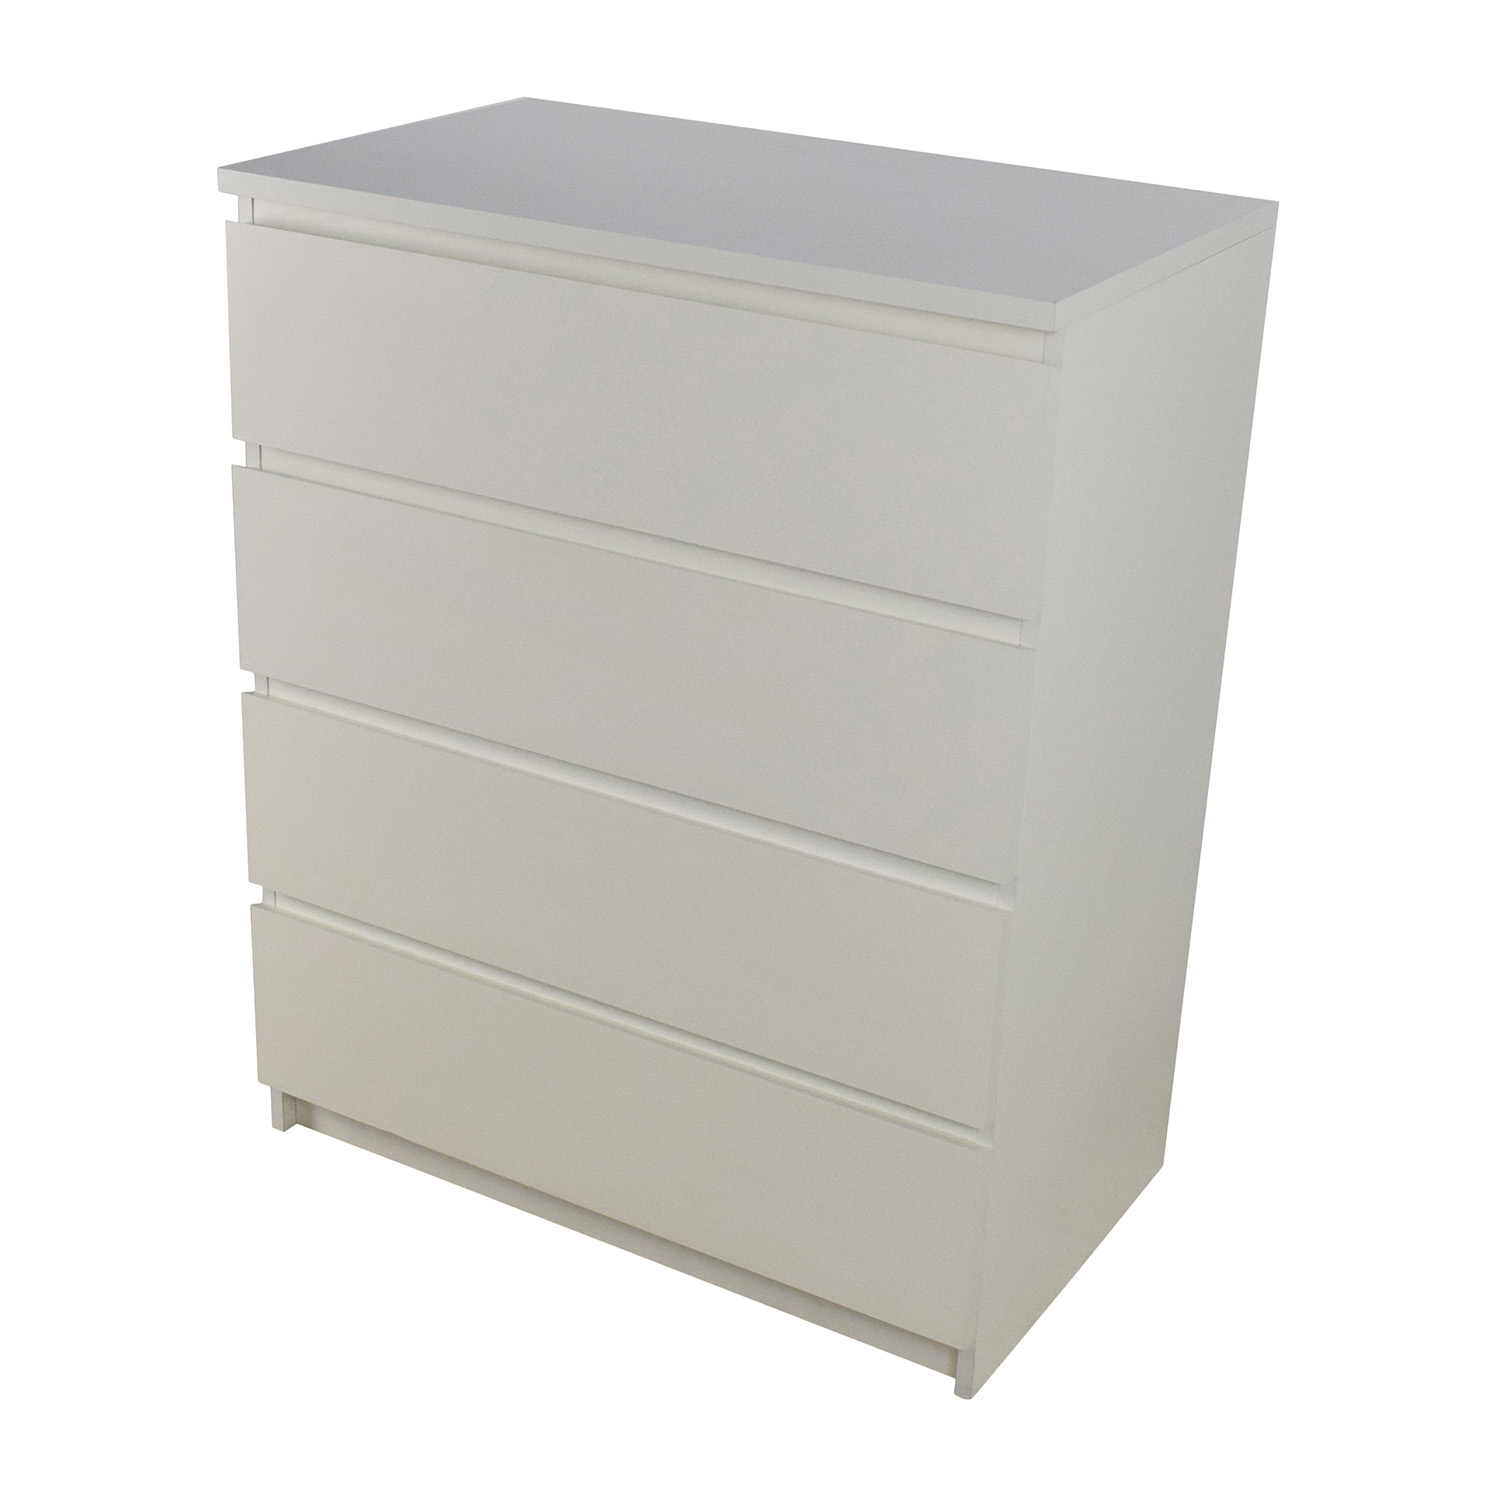 Ikea Malm 4 Drawer Dresser Storage